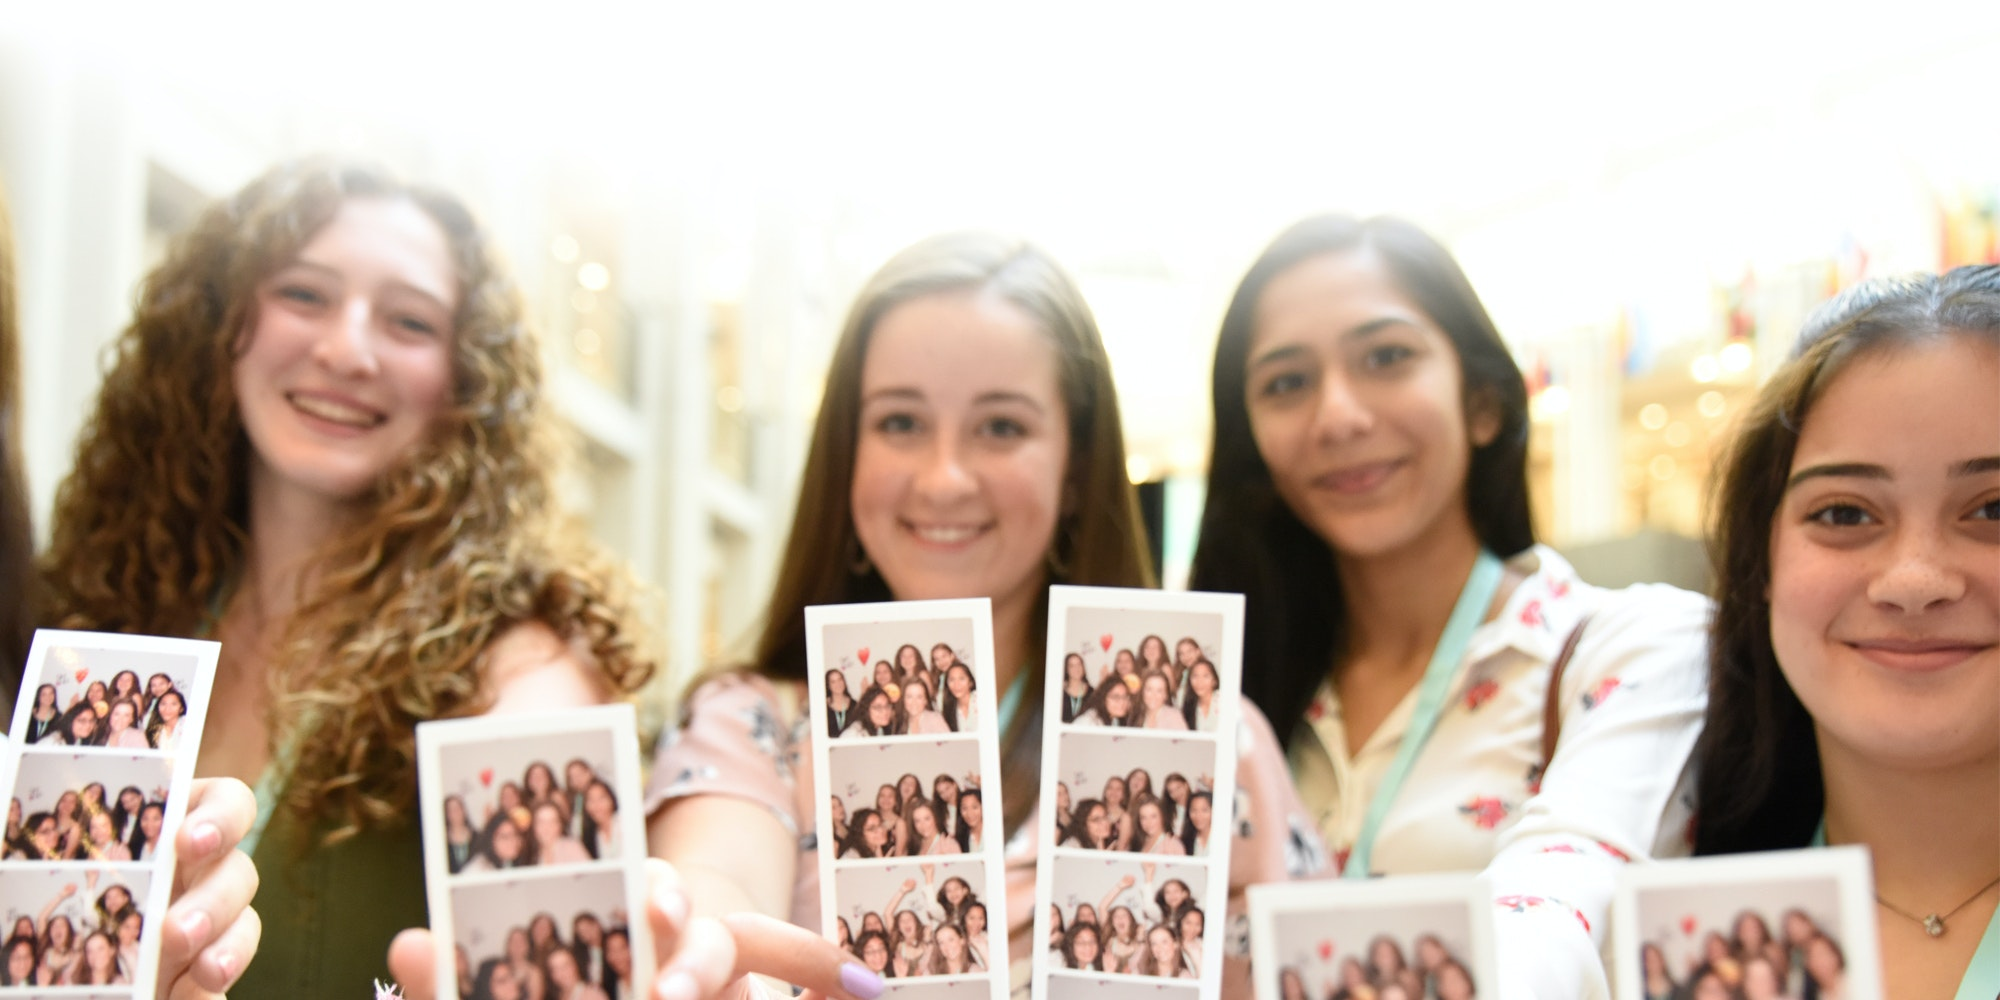 5 girls holding their photo booth pictures to the camera in the leadership summit